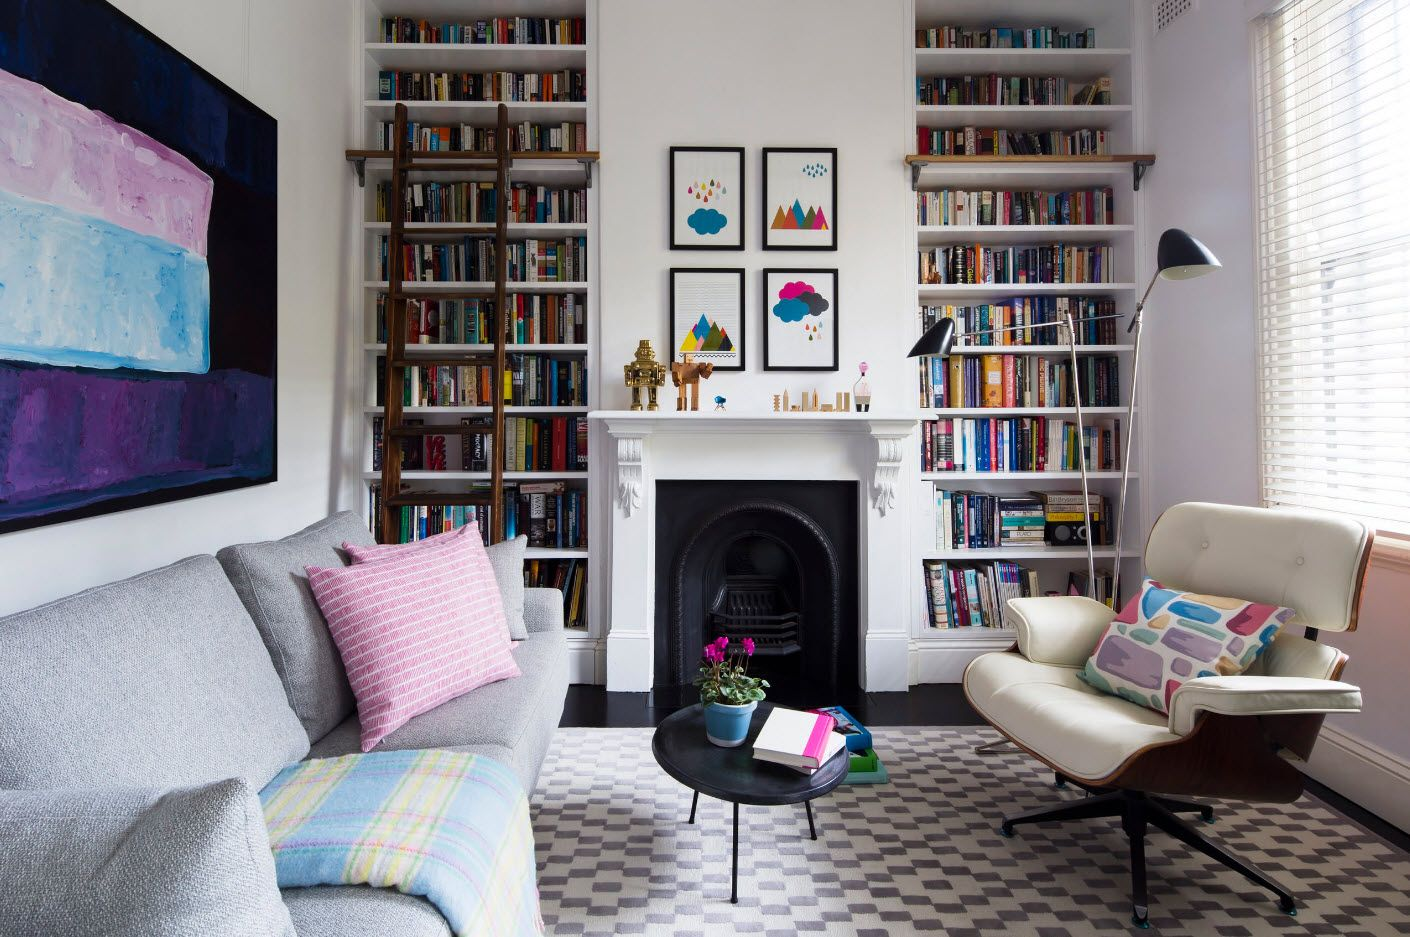 Nice floor-to-ceiling book shelves